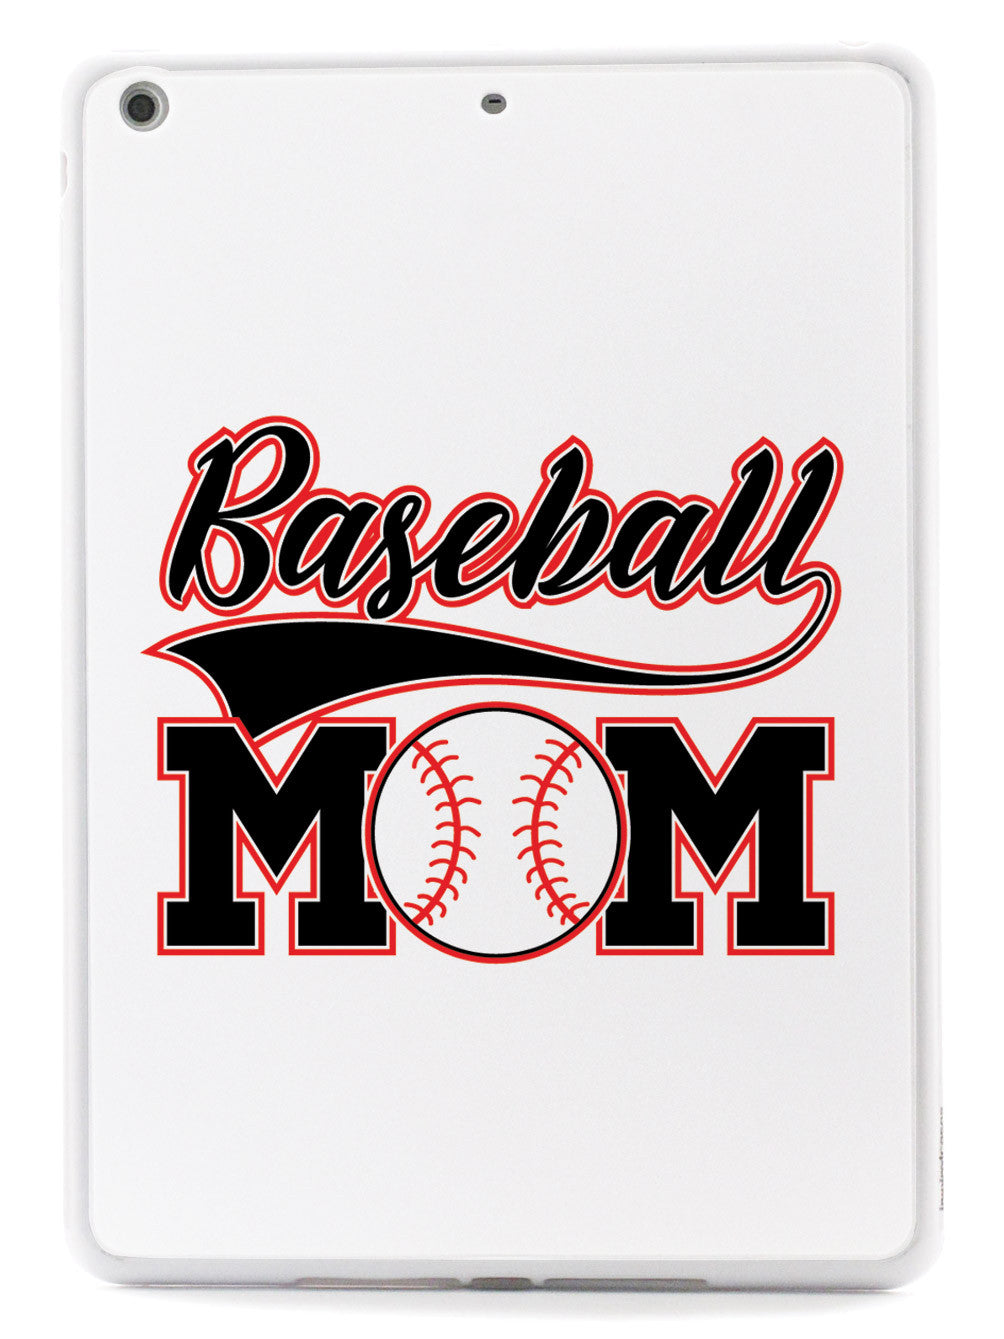 Baseball Mom - White Case